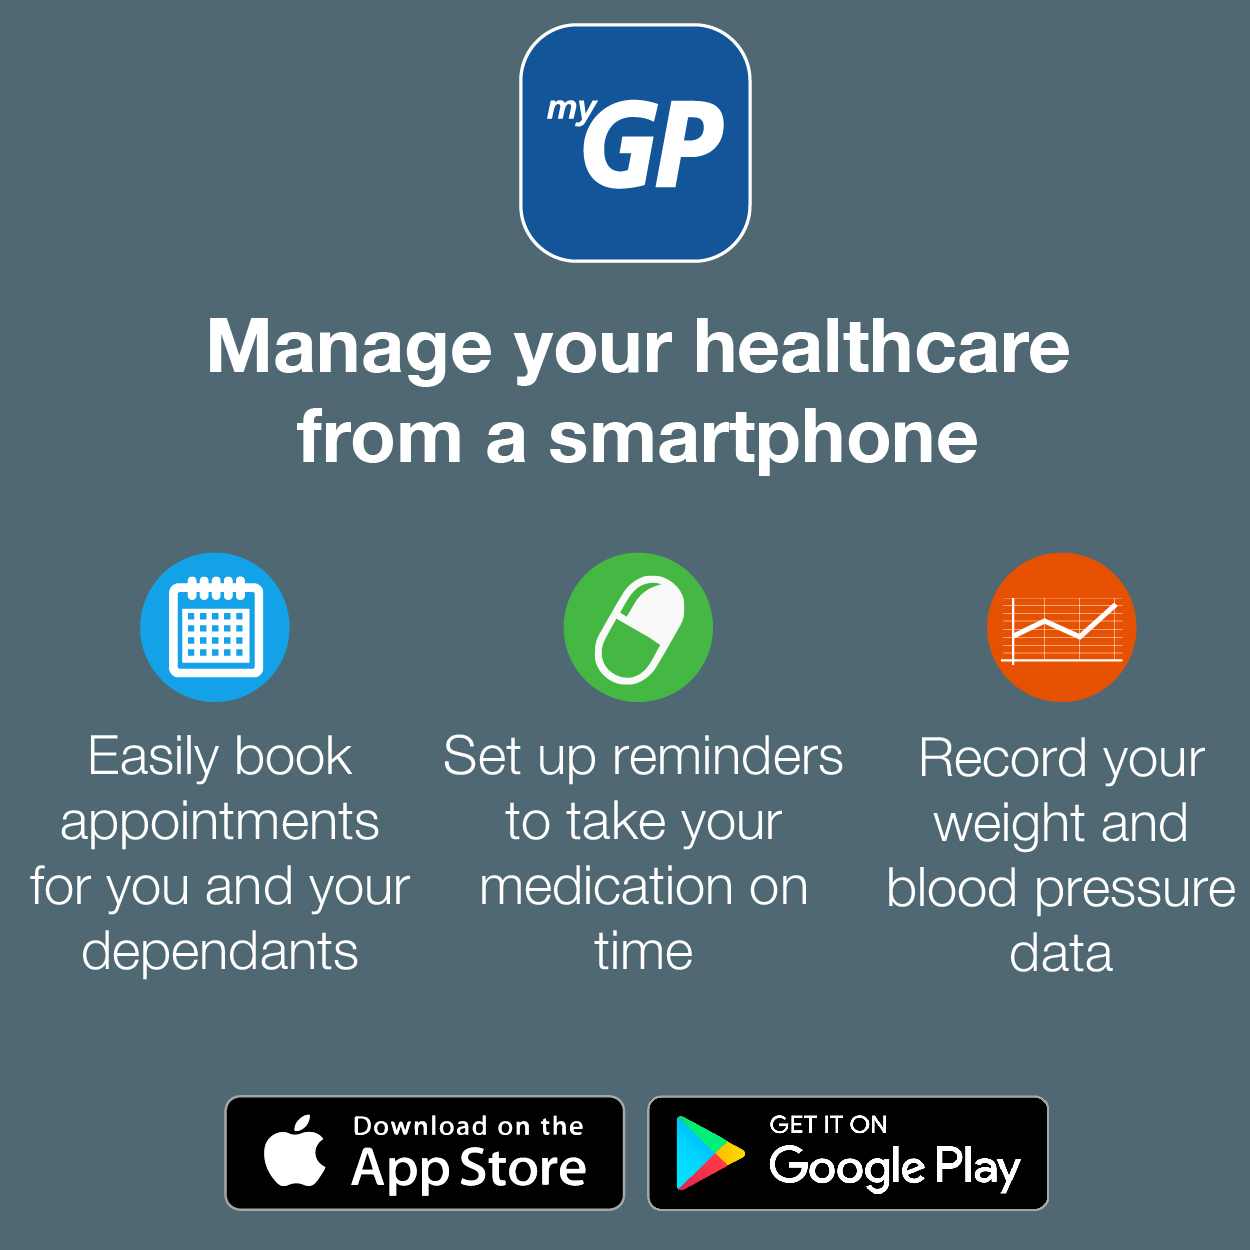 myGP. Manage your healthcare from a smartphone. Easily book appointments for you and your dependants.  Set up reminders to take your medication on time. Record your weight and blood pressure data.